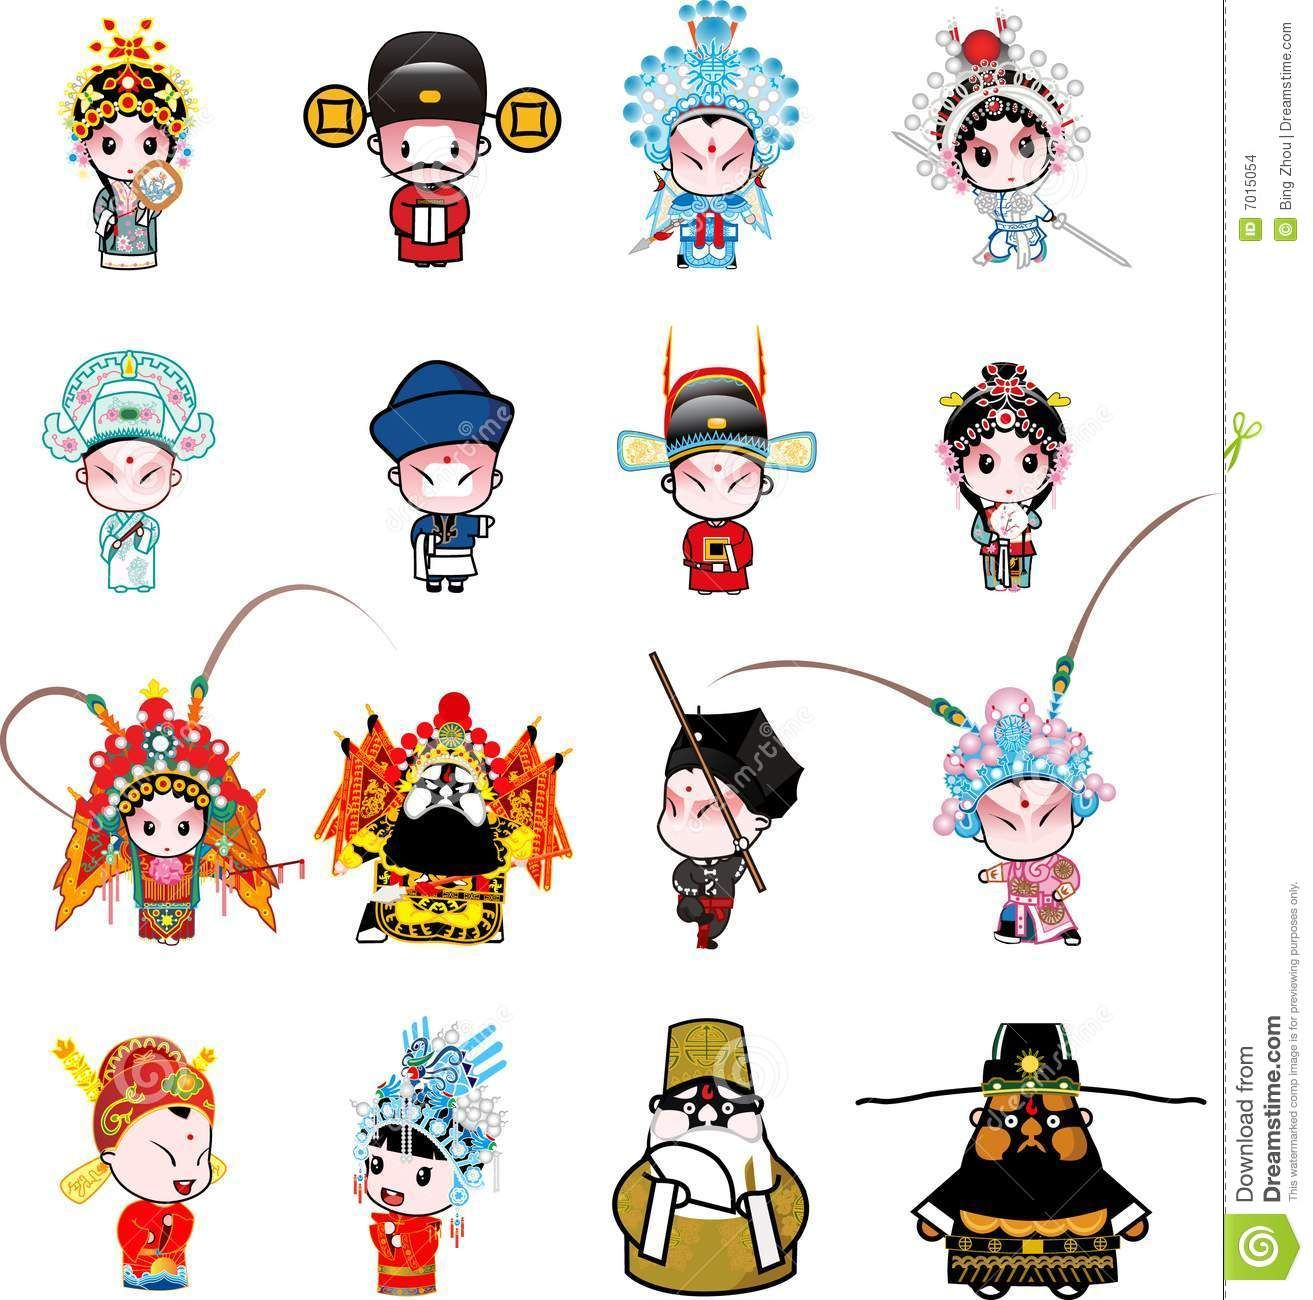 Chinese cartoon characters images download